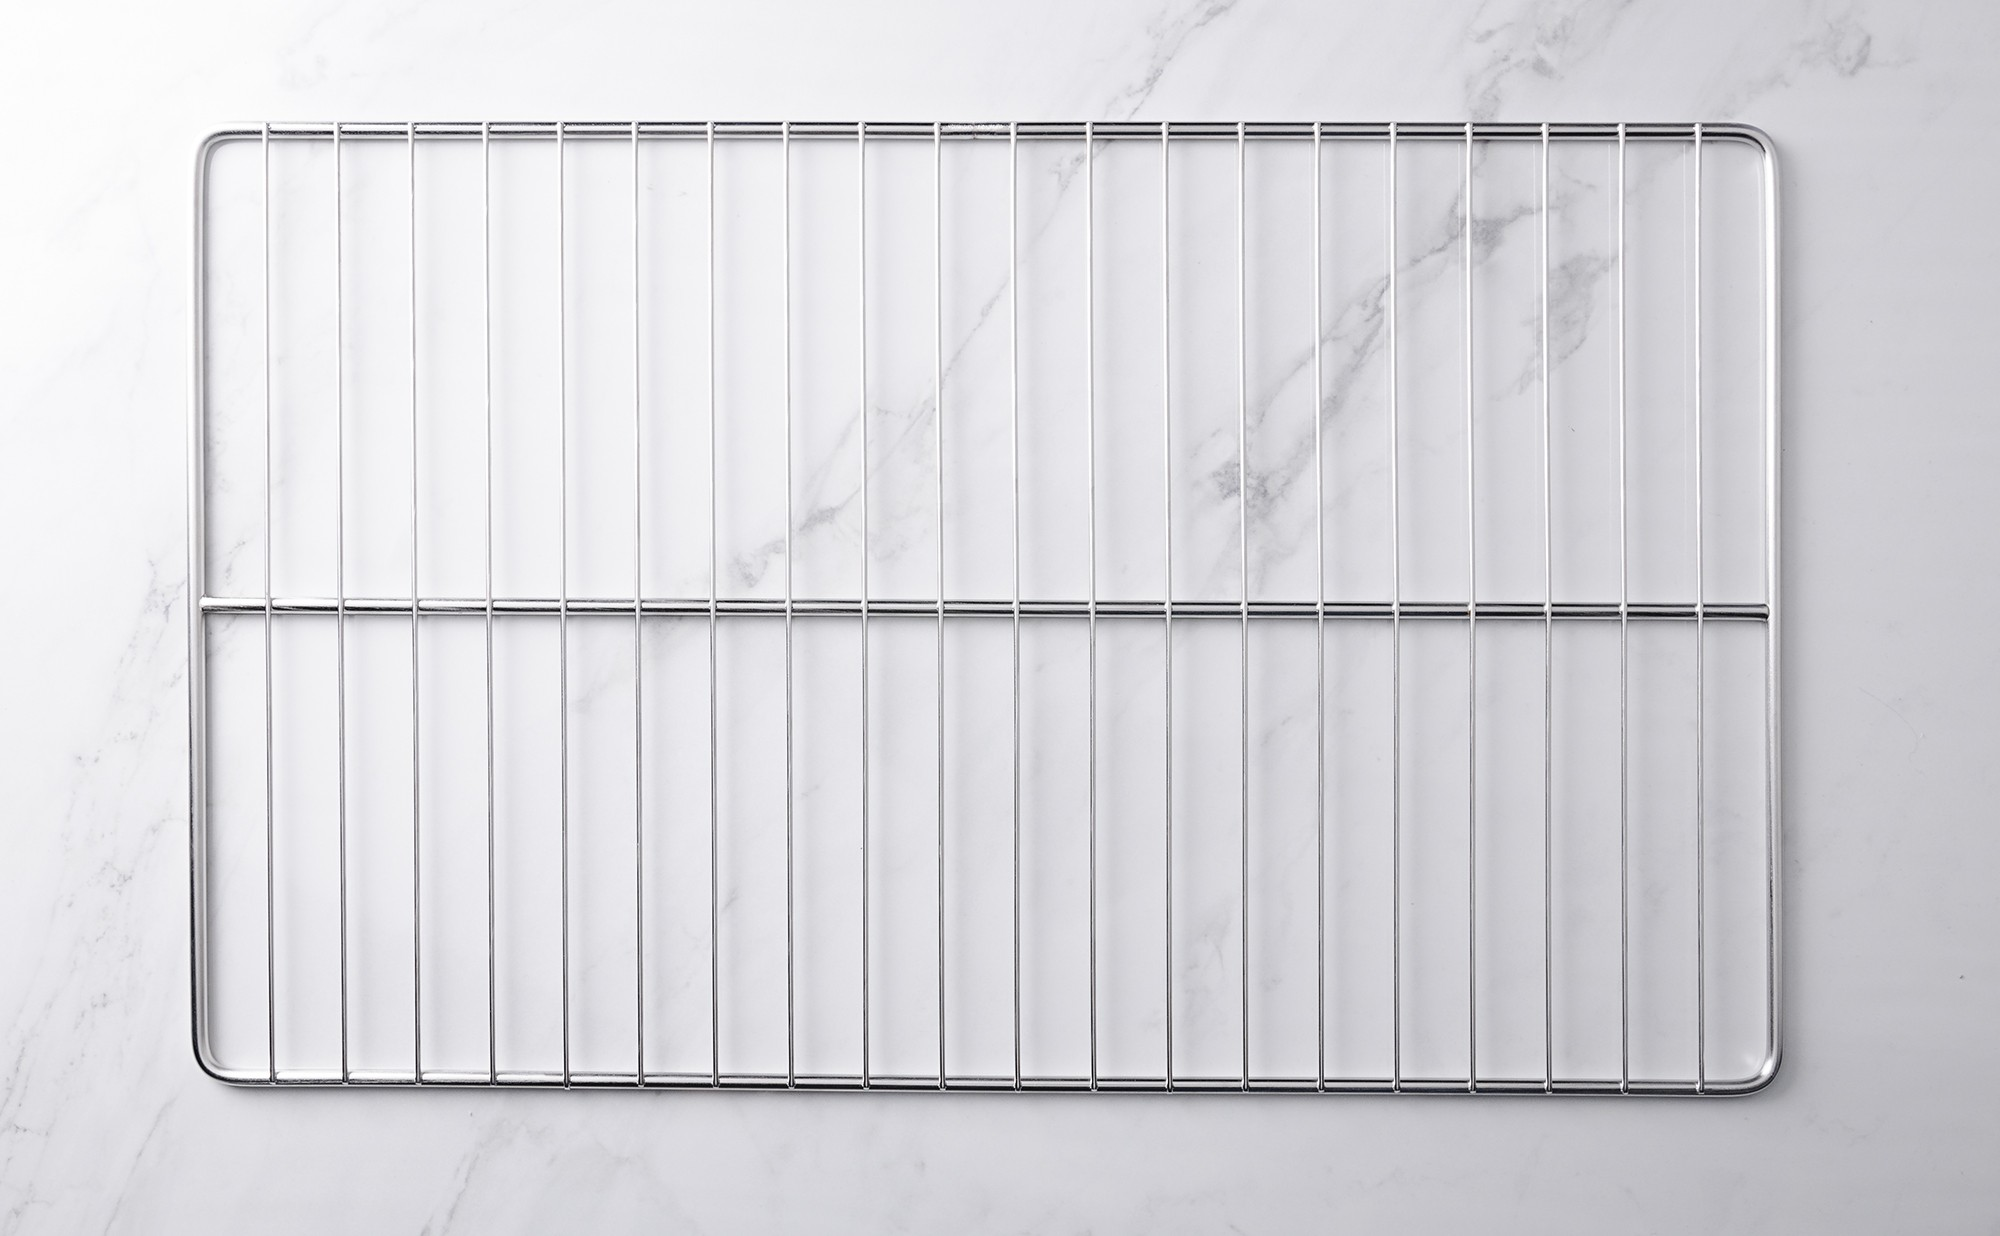 Grille inox gn 1 1 matfer bourgeat - Grille indiciaire adjoint technique 2014 ...